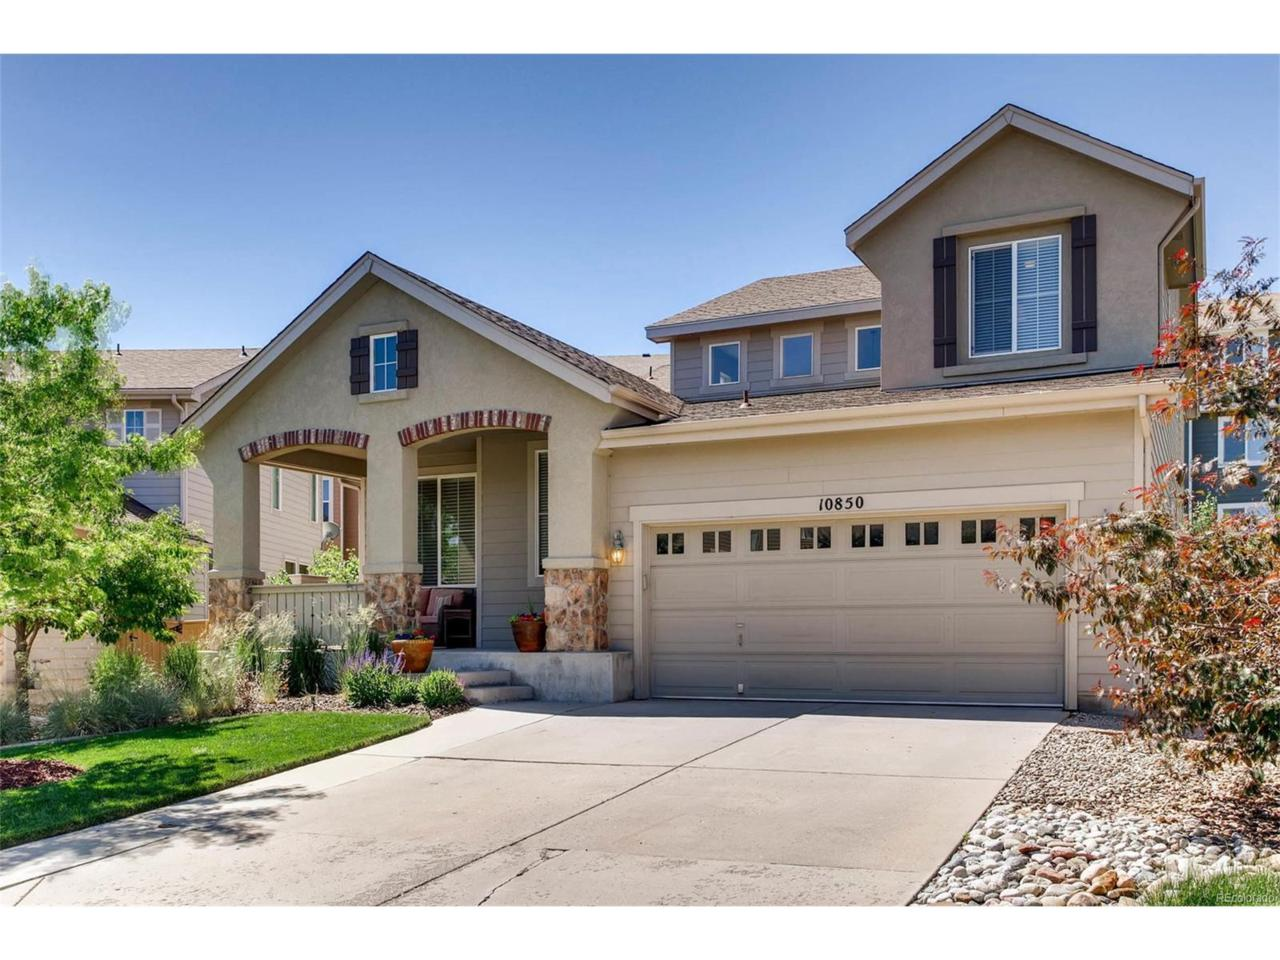 10850 Trotwood Way, Highlands Ranch, CO 80126 (MLS #7339028) :: 8z Real Estate